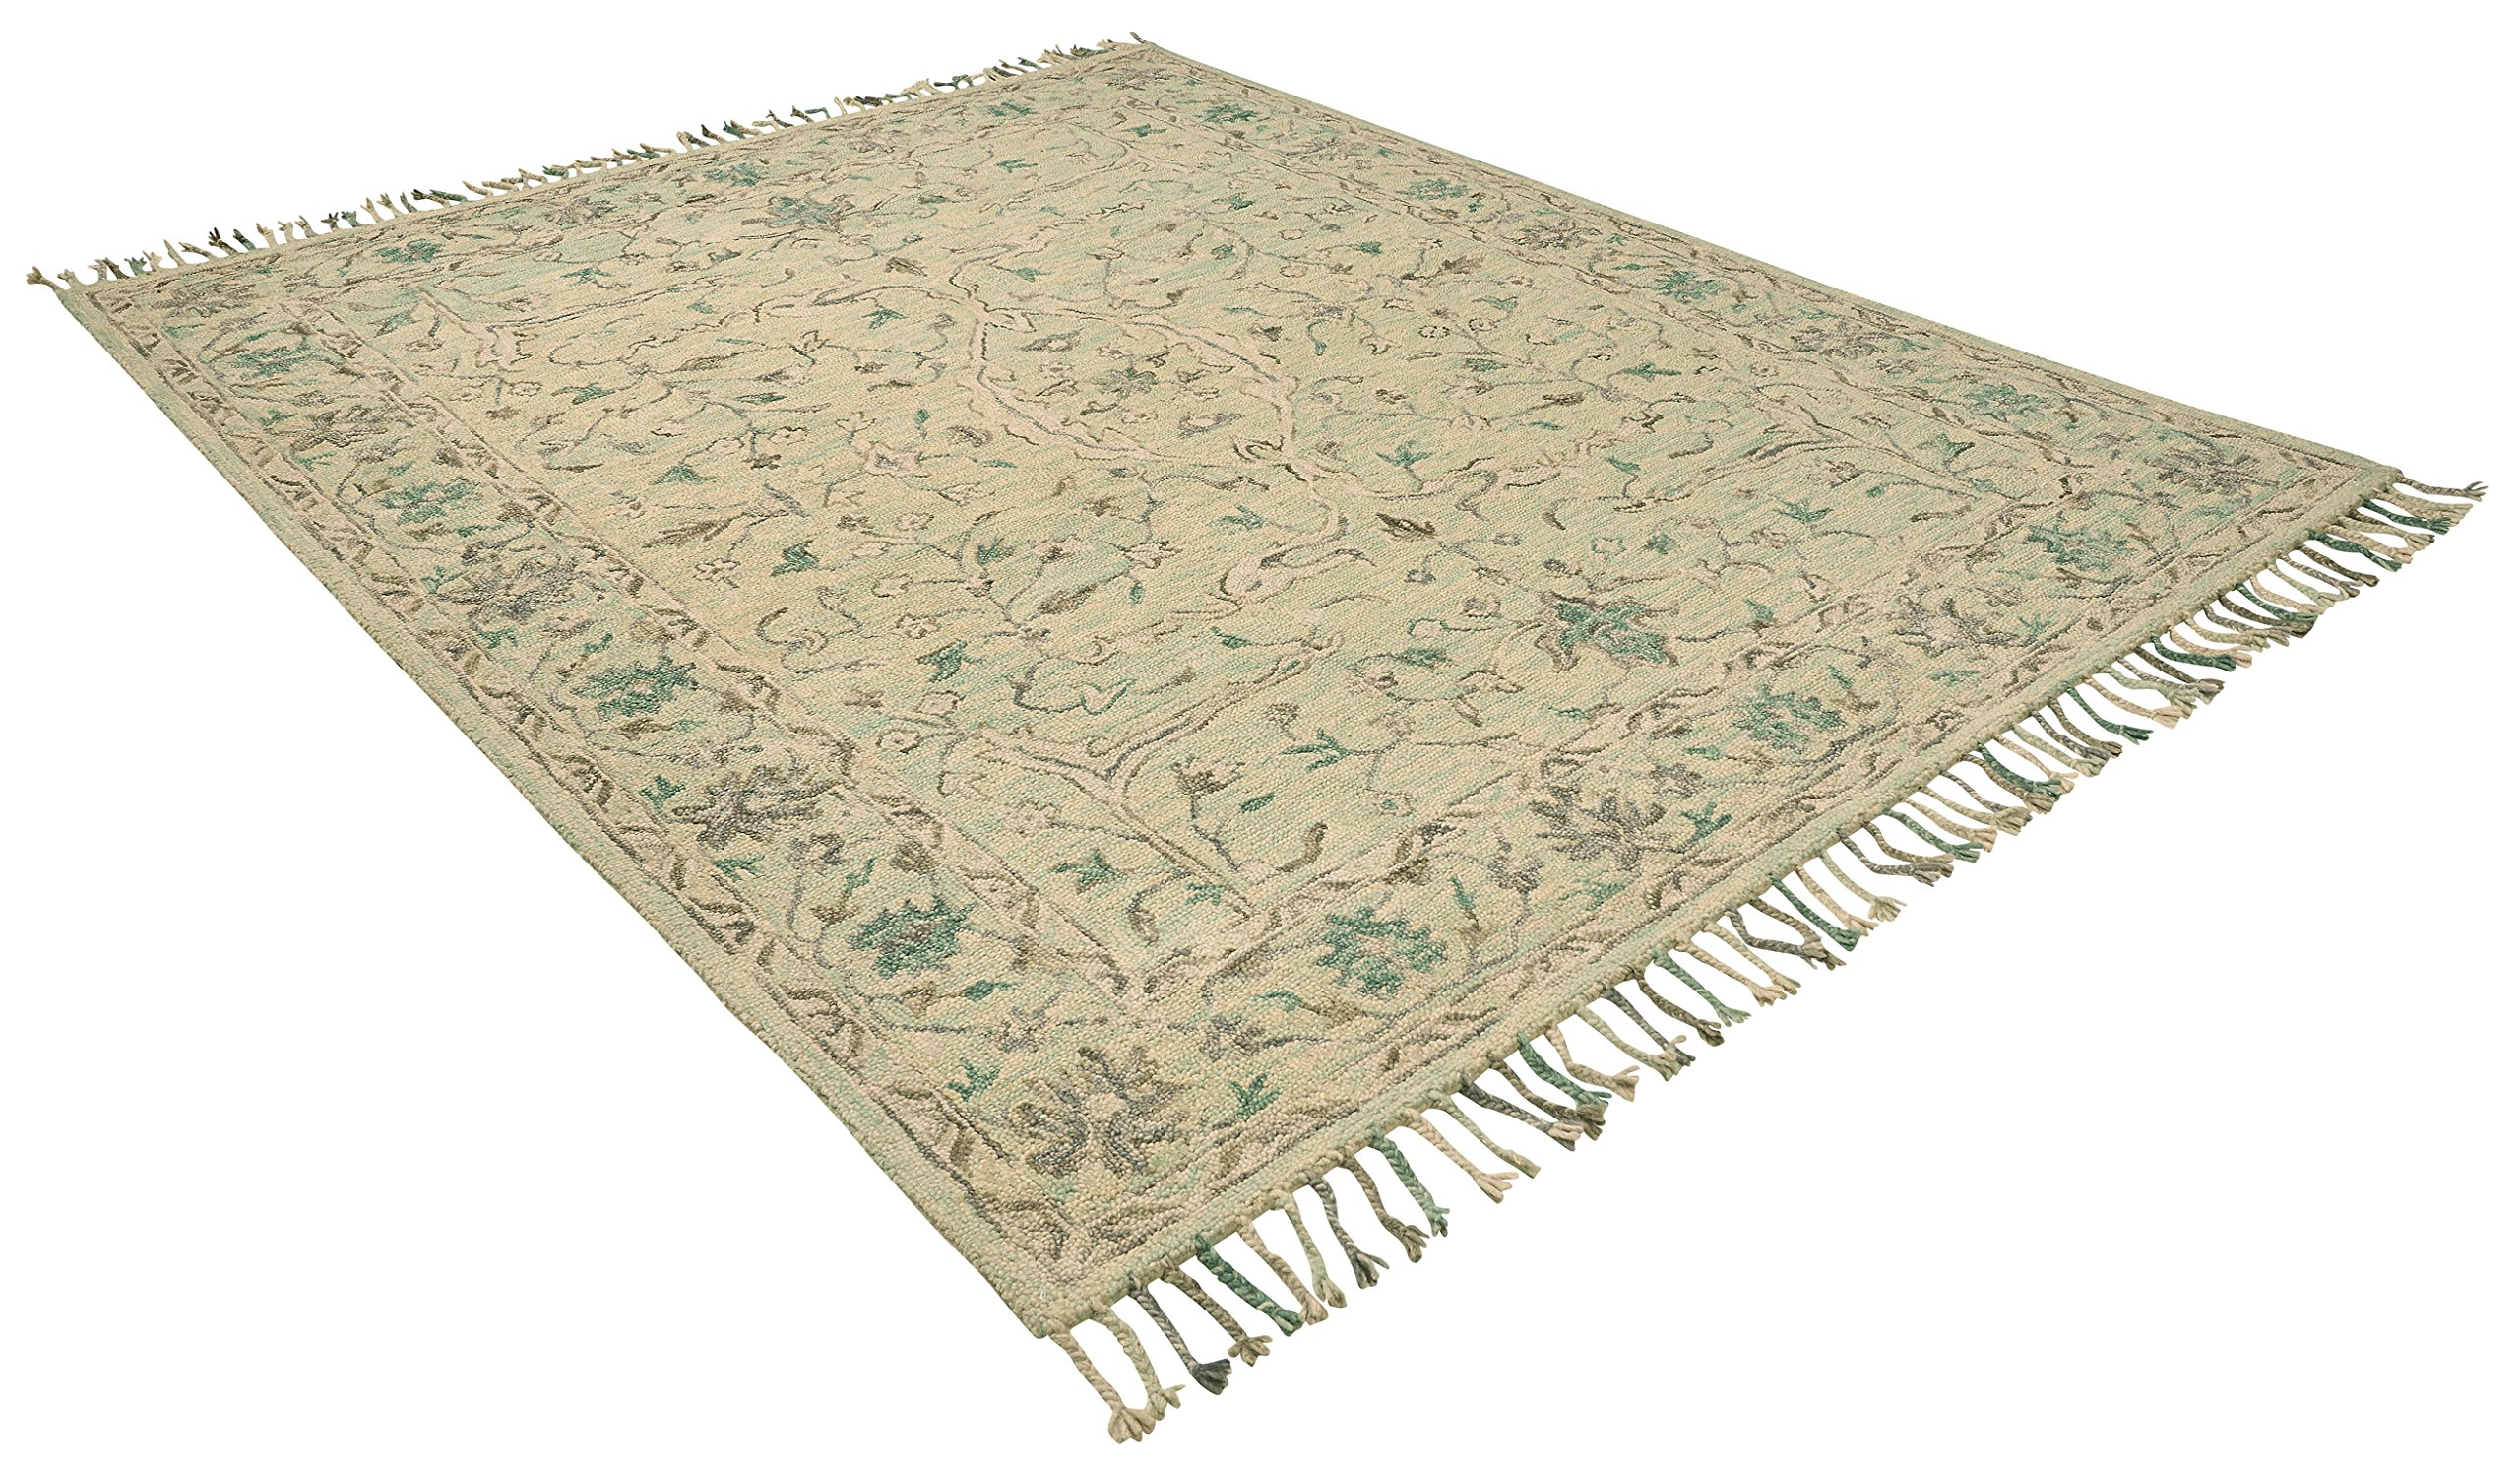 Stone & Beam Serene Transitional Wool Area Rug, 8' x 10', Multi by Stone & Beam (Image #4)